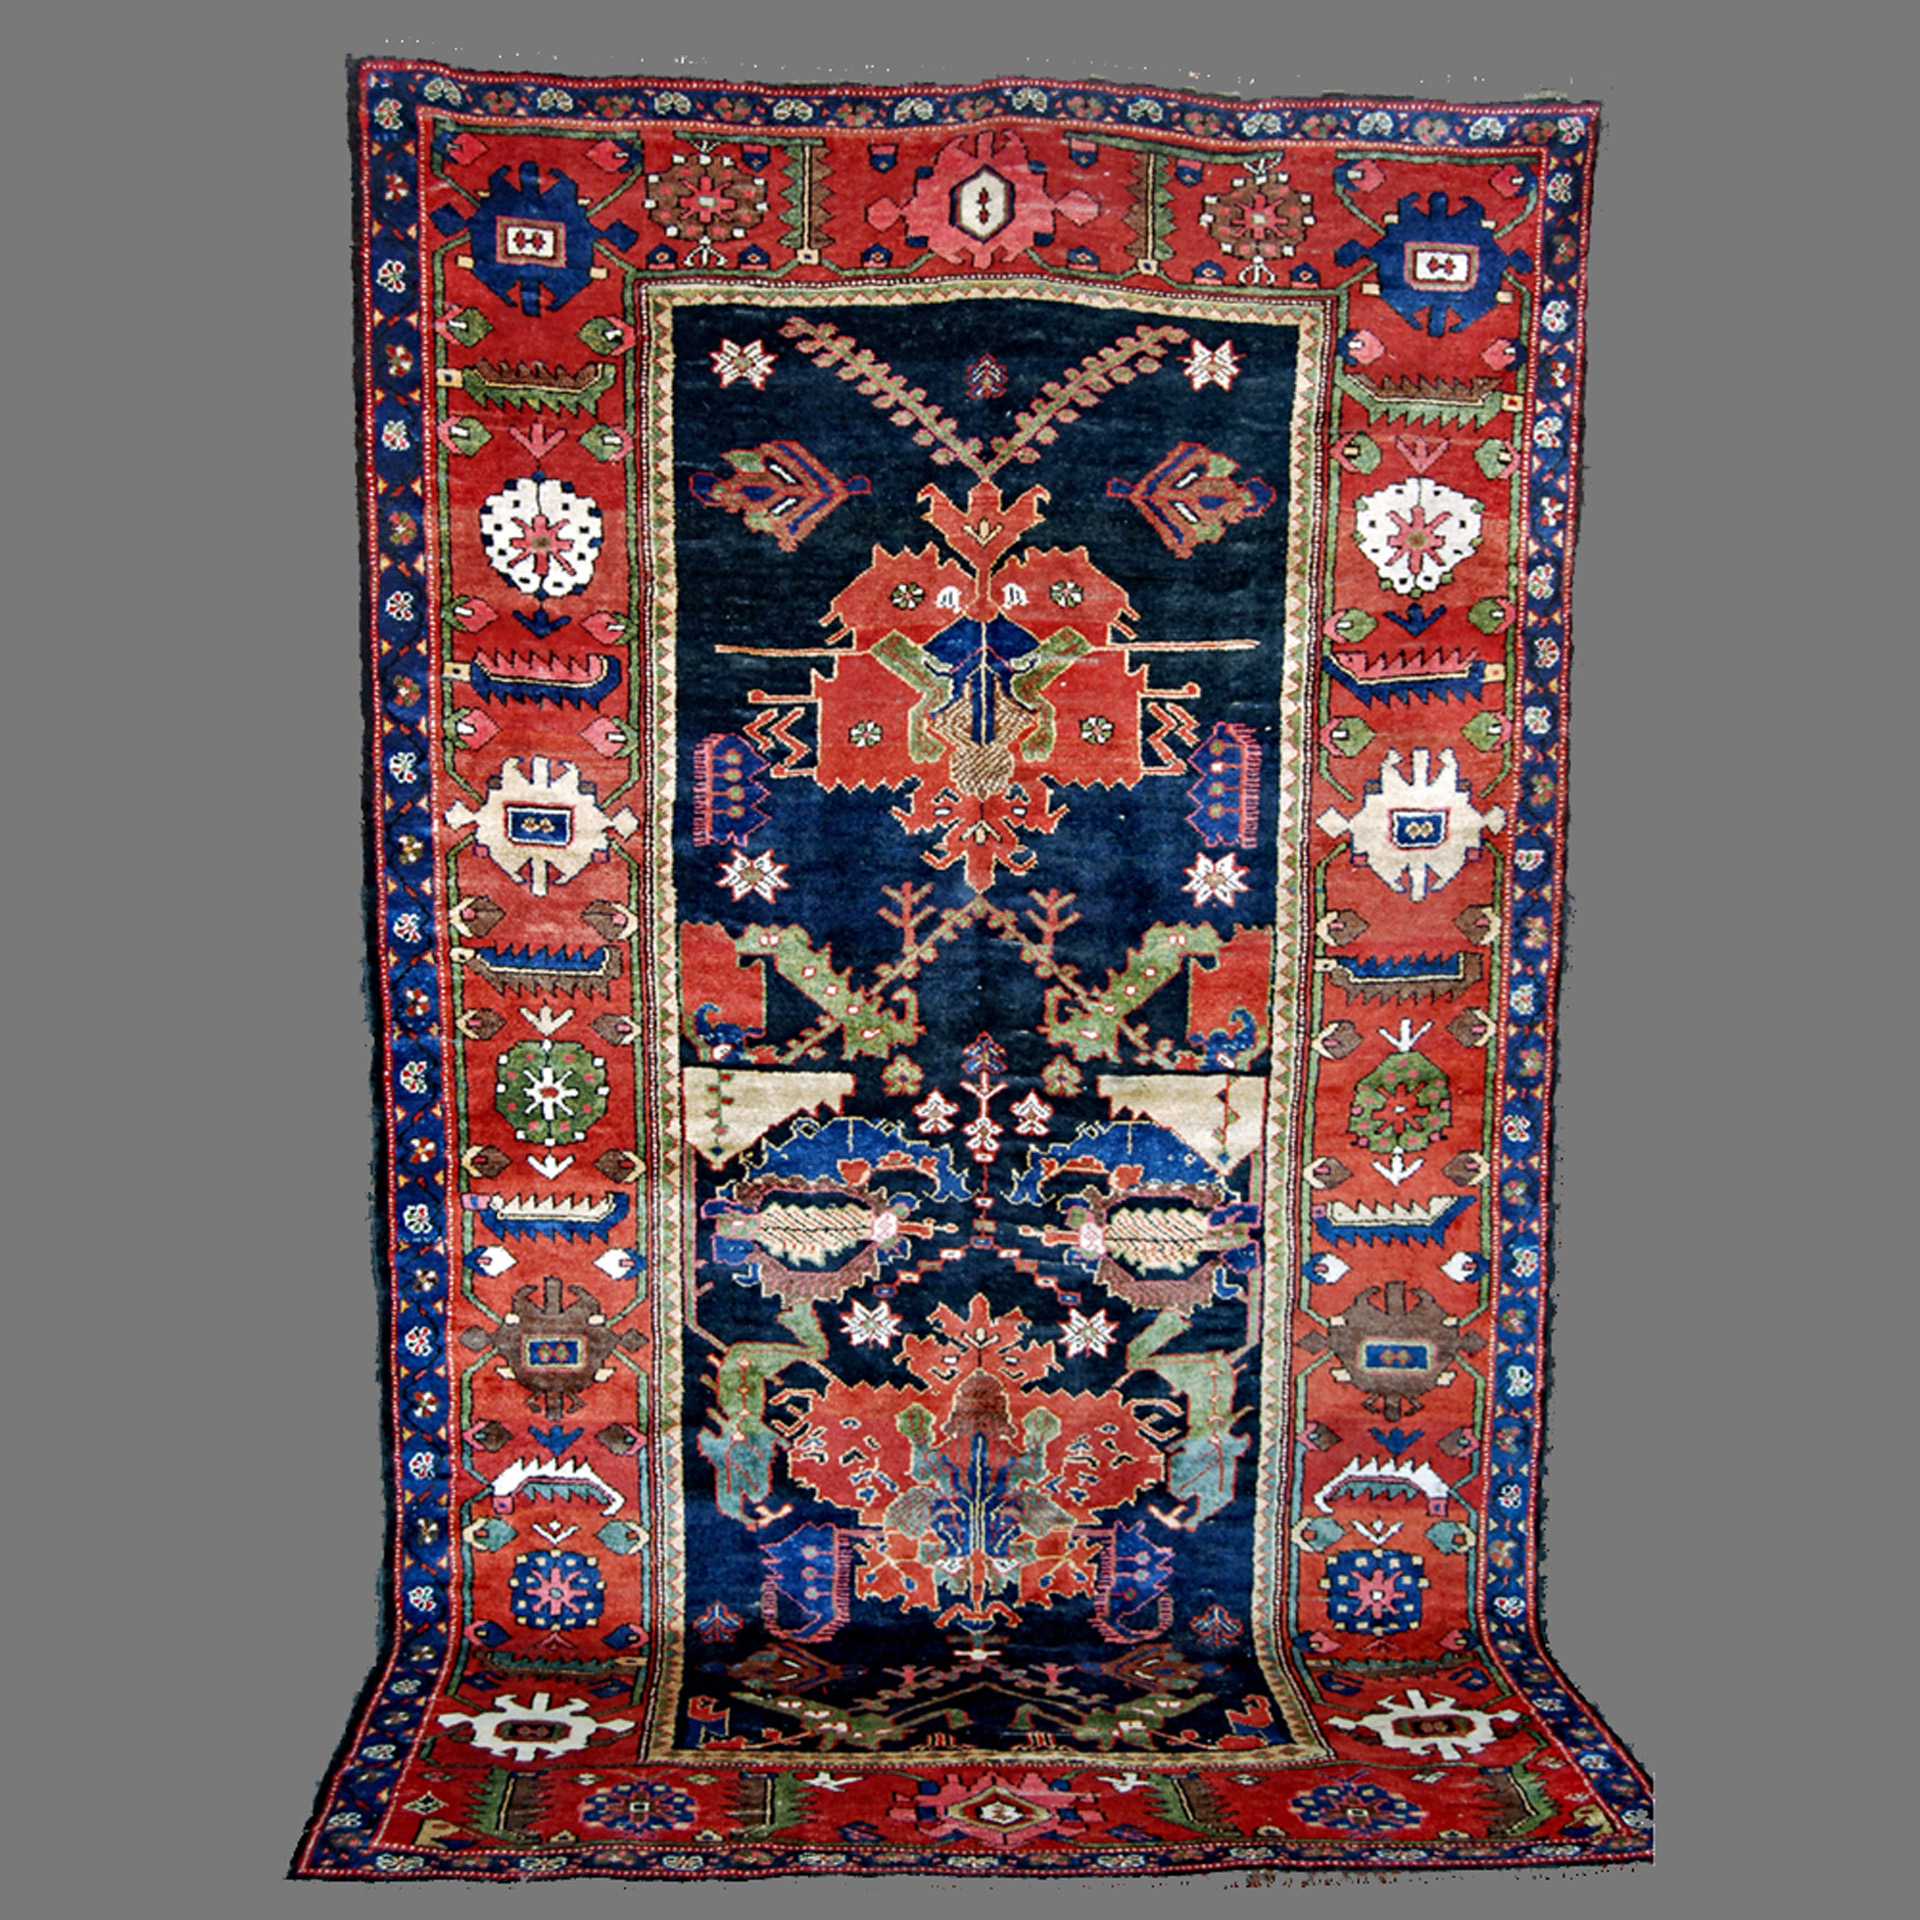 Antique south Persian Bakhtiyari tribal rug with a design based on early Caucasian Dragon Carpets